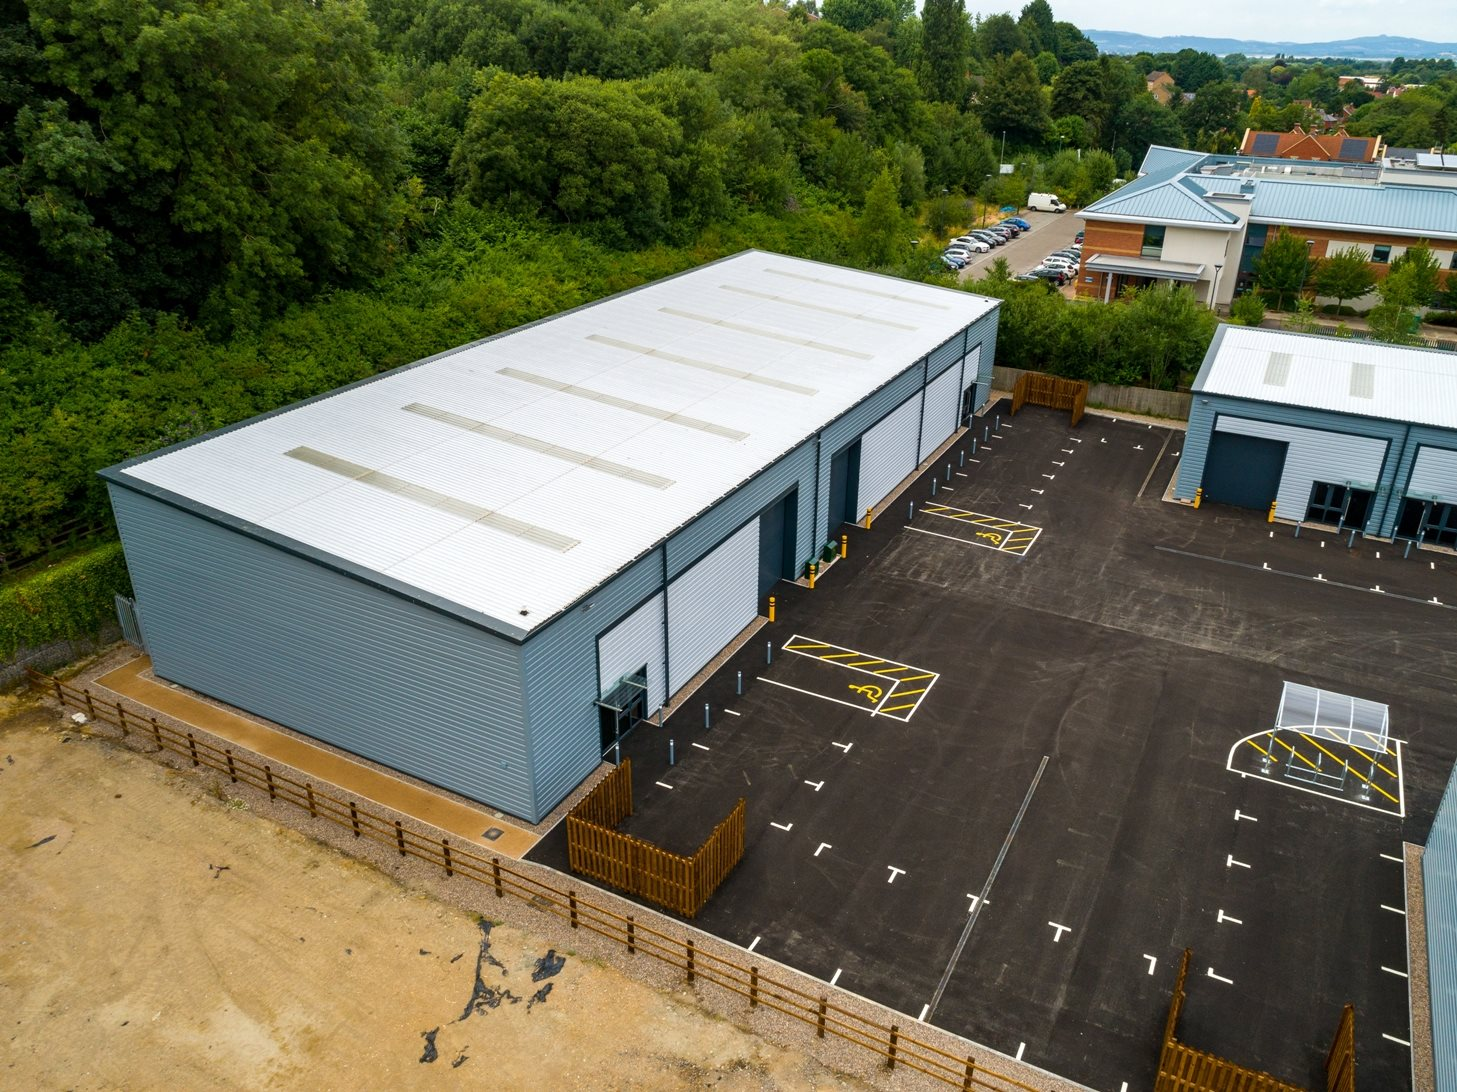 Phase II Littlecombe Business Park